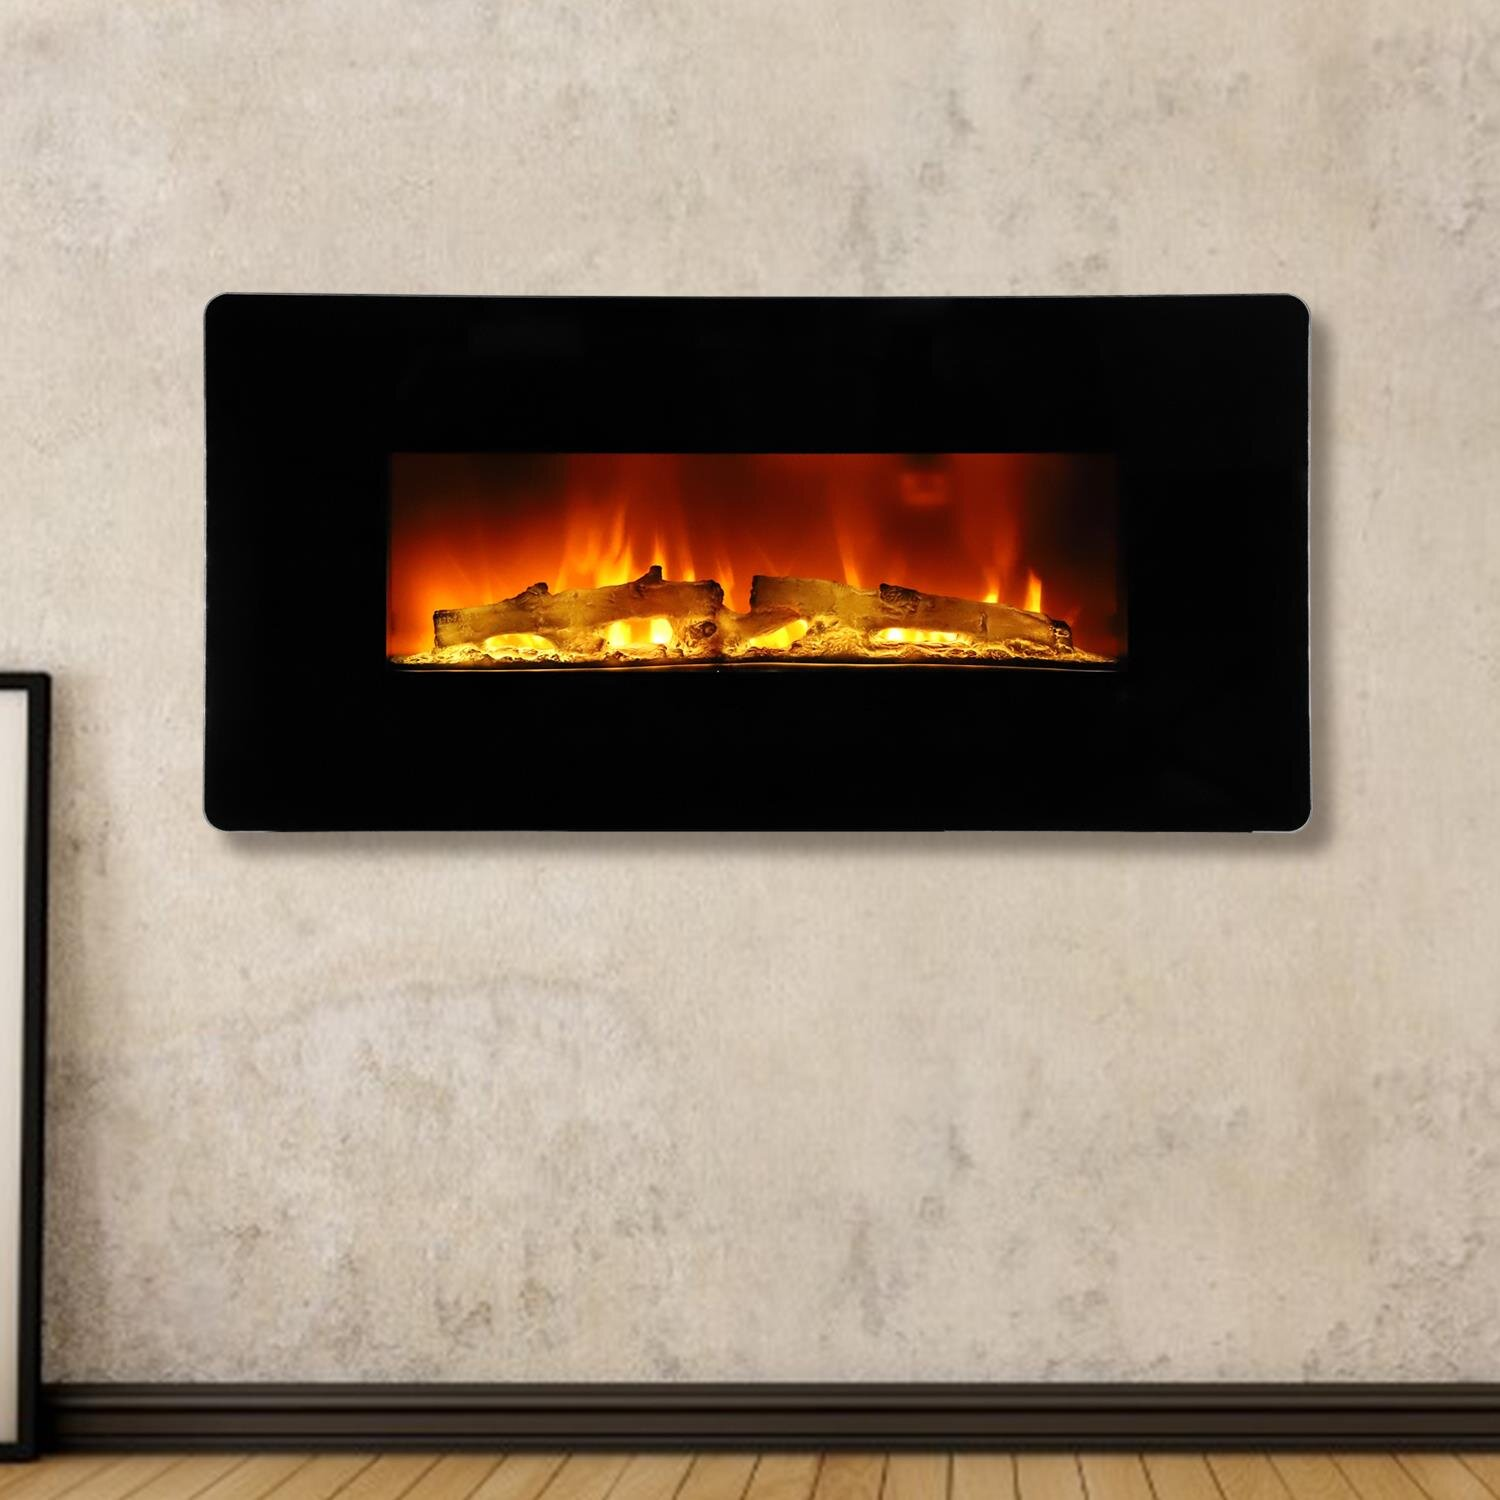 30 40 Inches Wall Mounted Electric Fireplaces Stoves You Ll Love In 2021 Wayfair